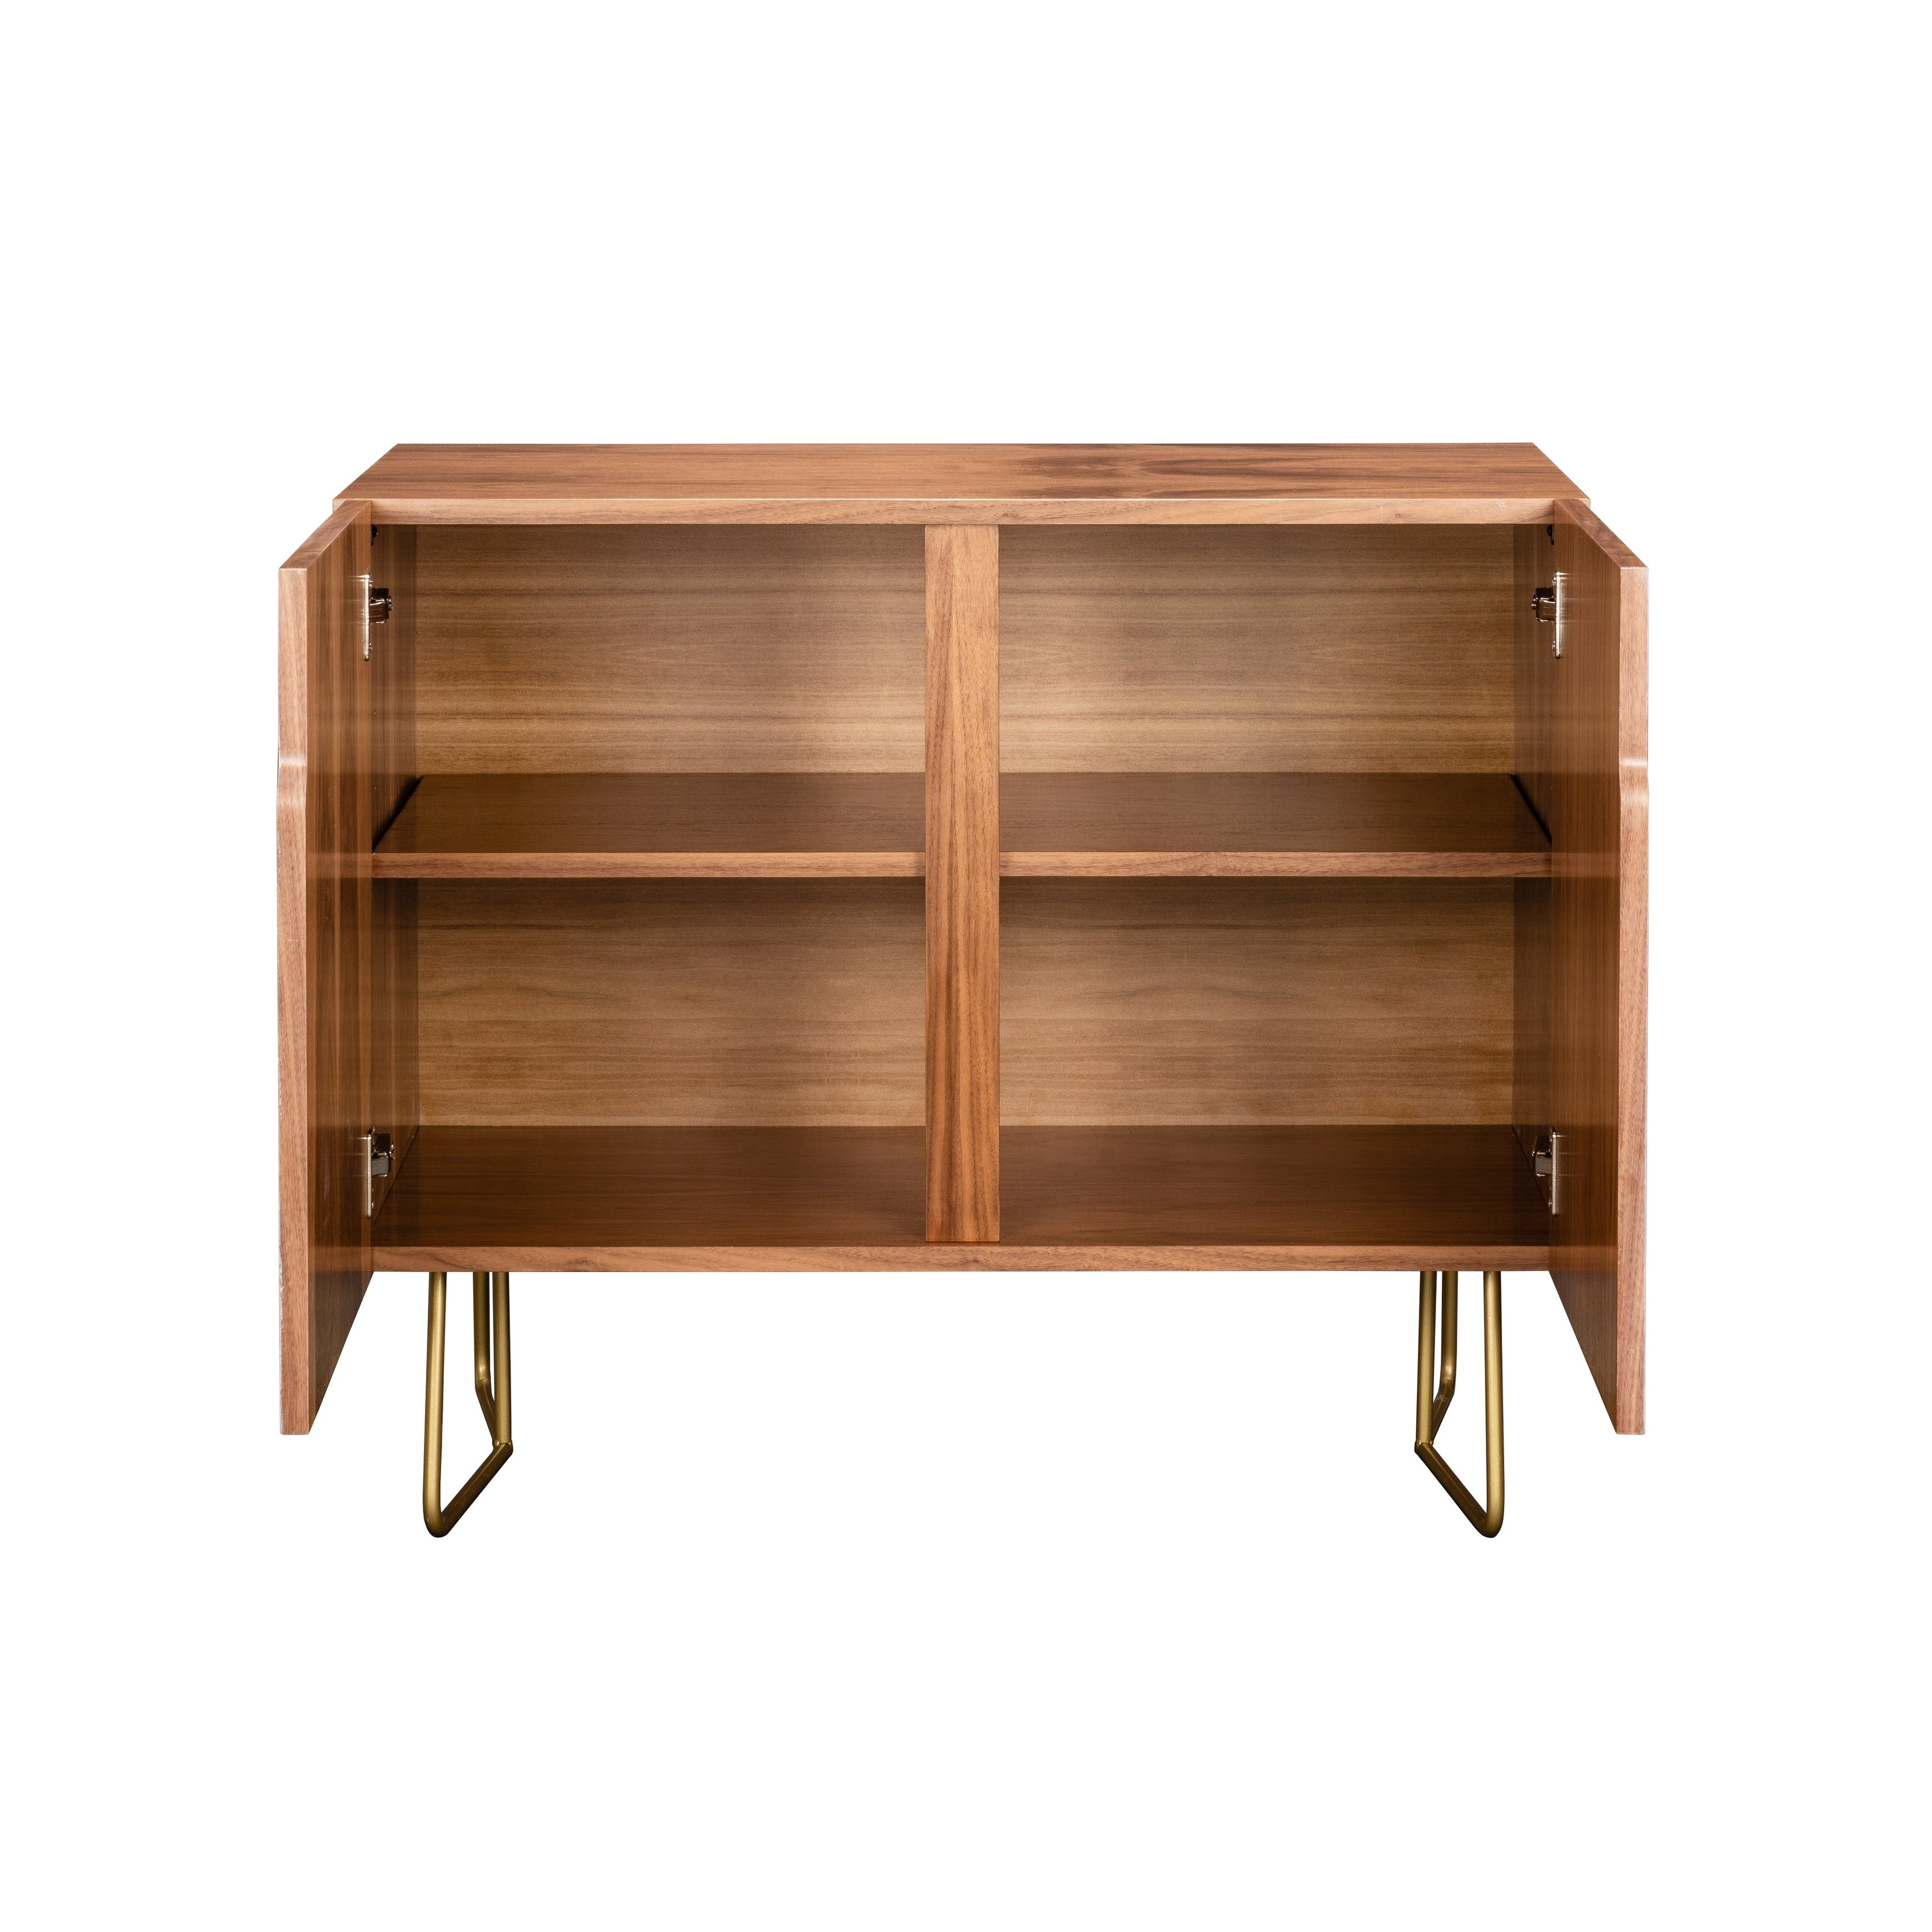 Deny Designs Beach Stripes Credenza (Birch Or Walnut, 2 Leg Options) Intended For Beach Stripes Credenzas (View 9 of 20)